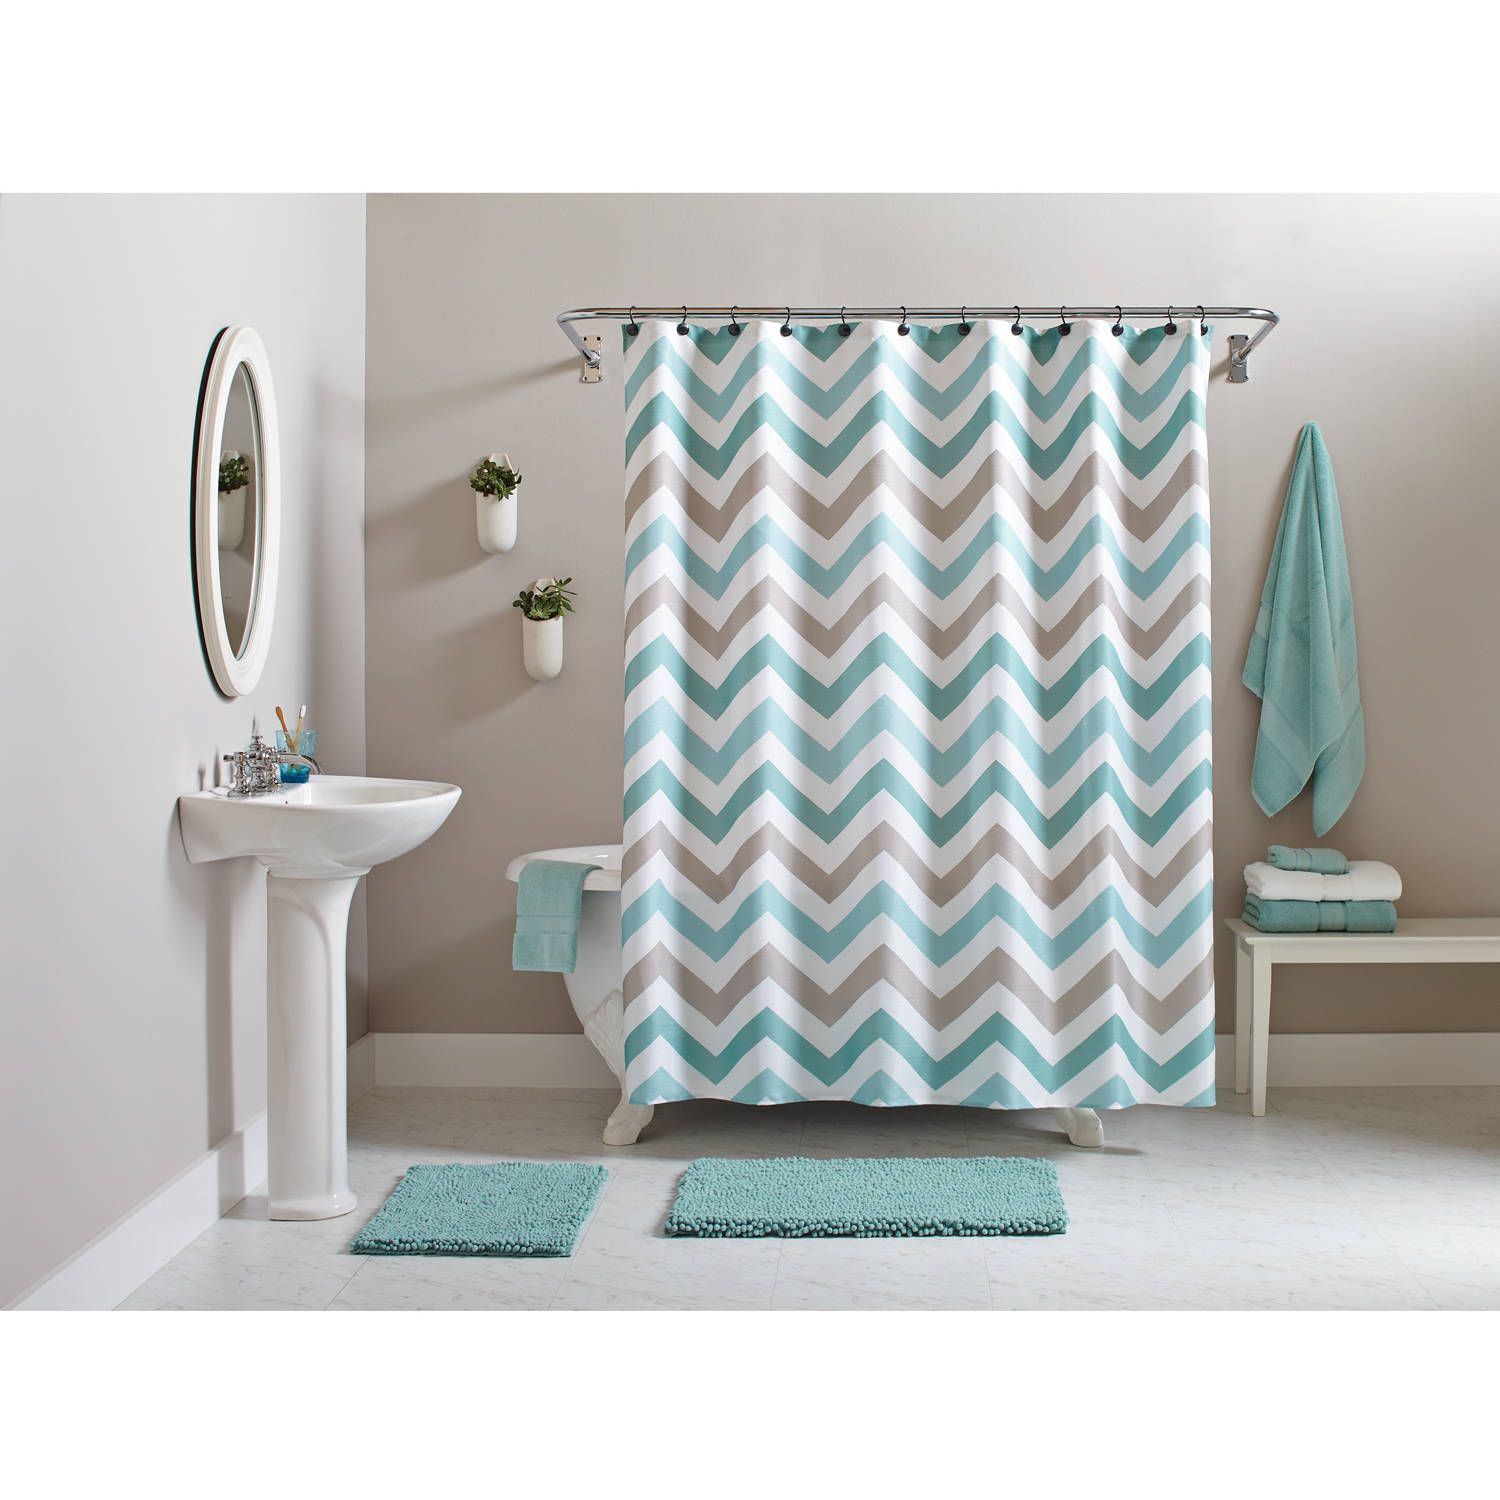 Get A New Look Of Bathroom With Elegant Bathroom Decor Sets With